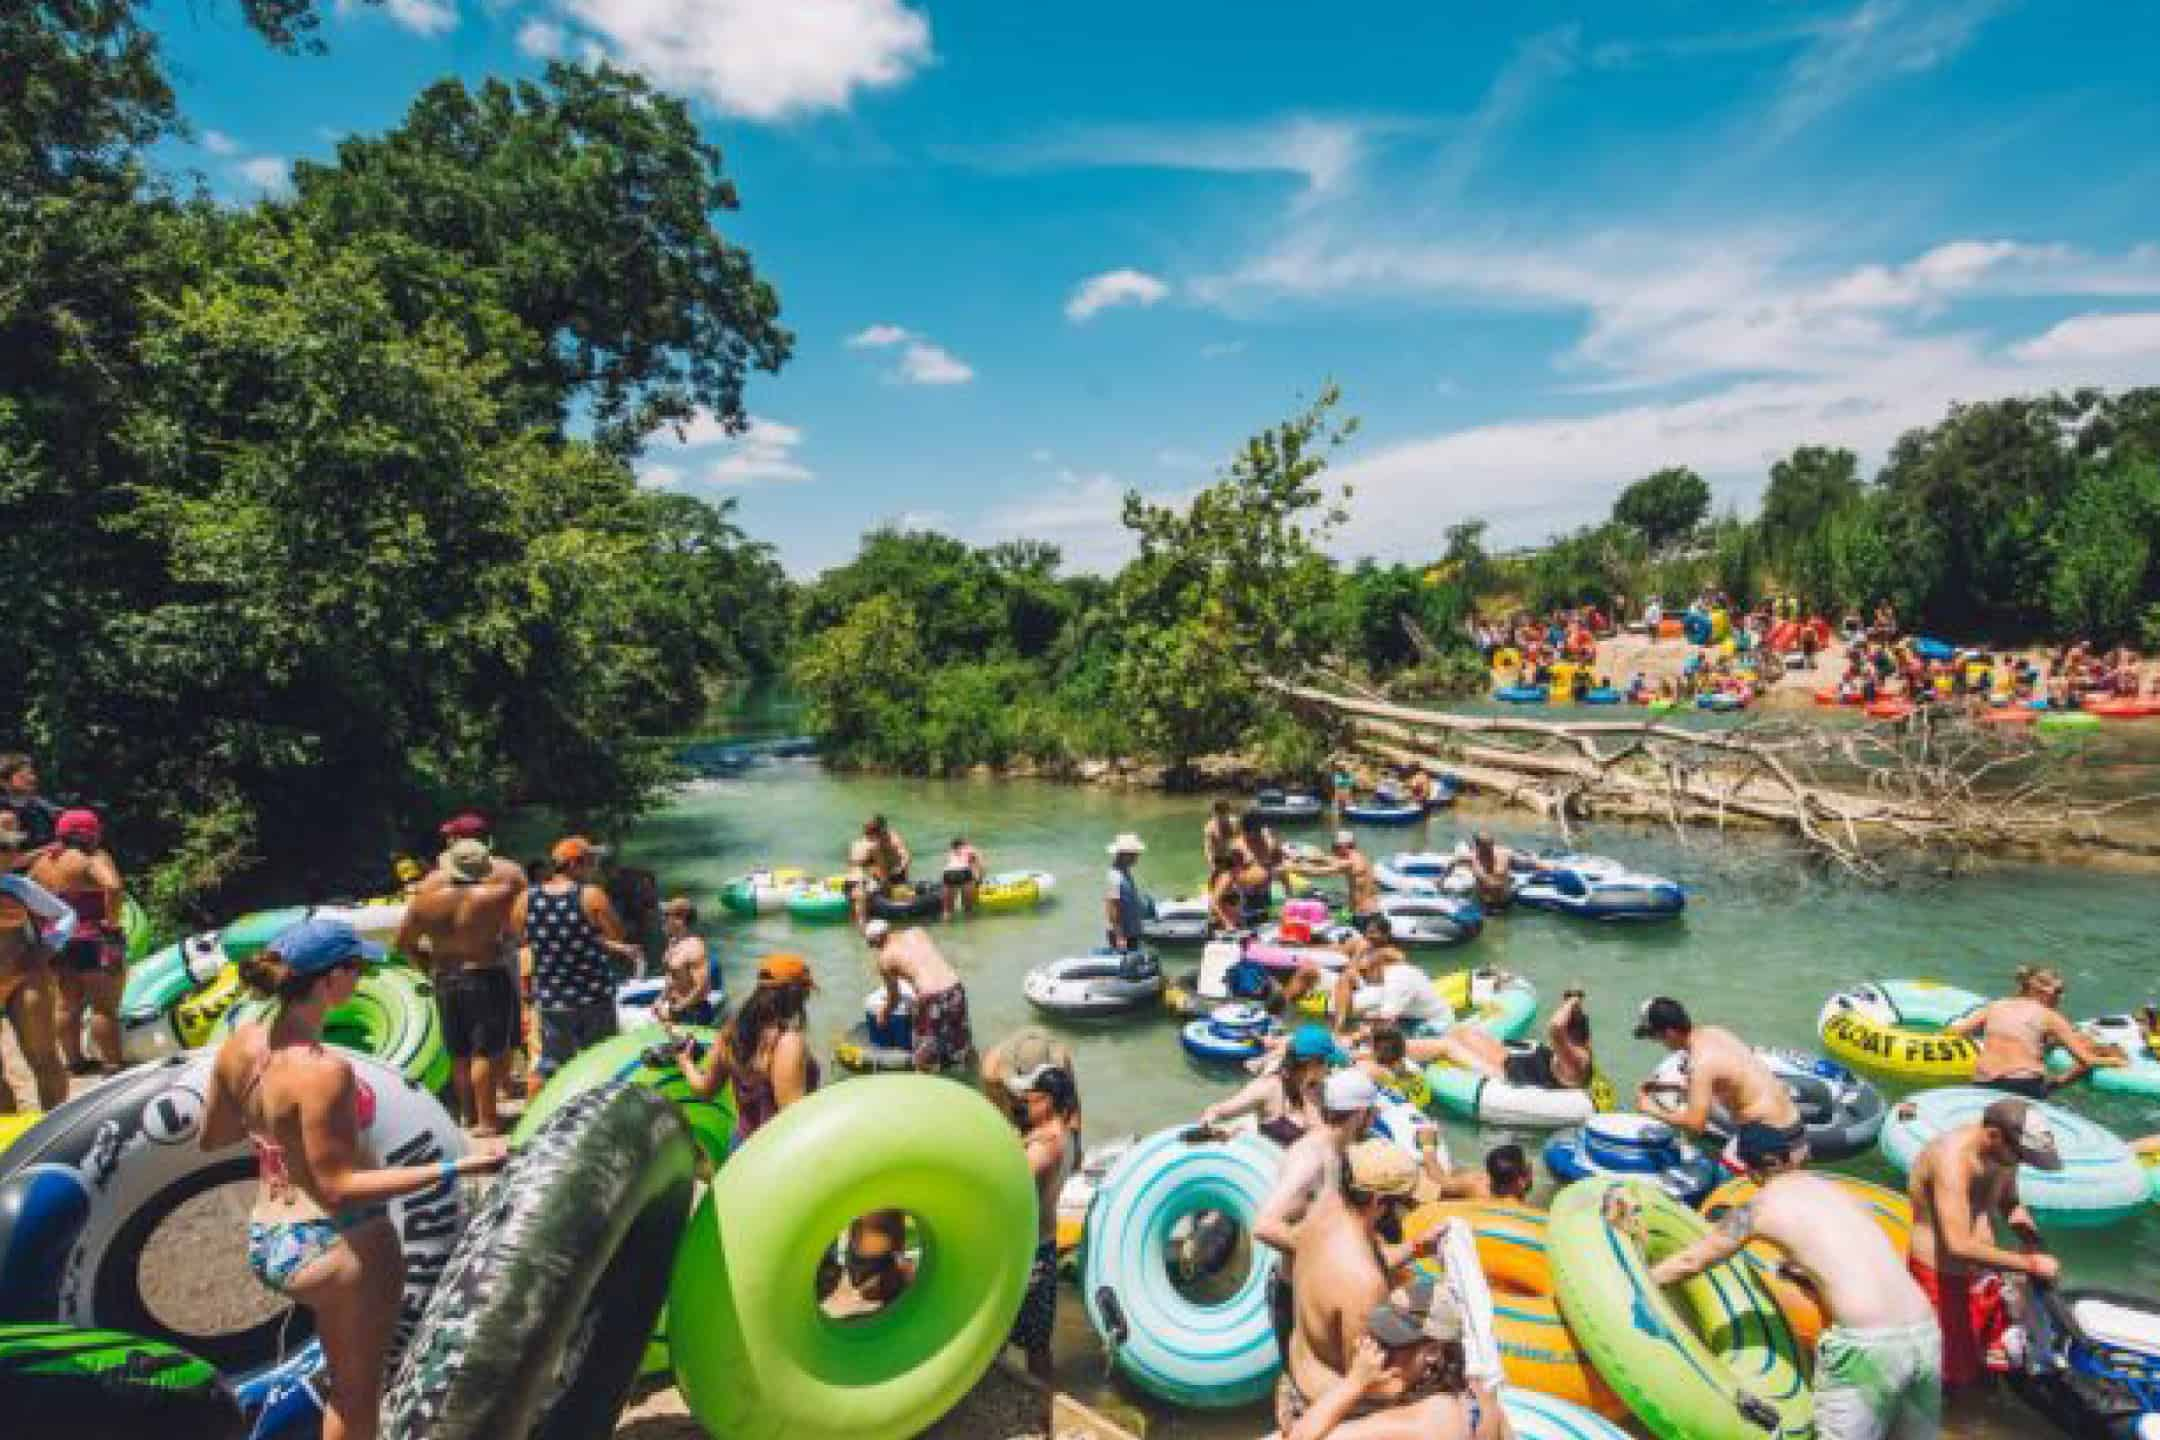 Art Wolfe Floating Market Live The Lifestyle Love The Lifestyle Top 10 July 2018 Events